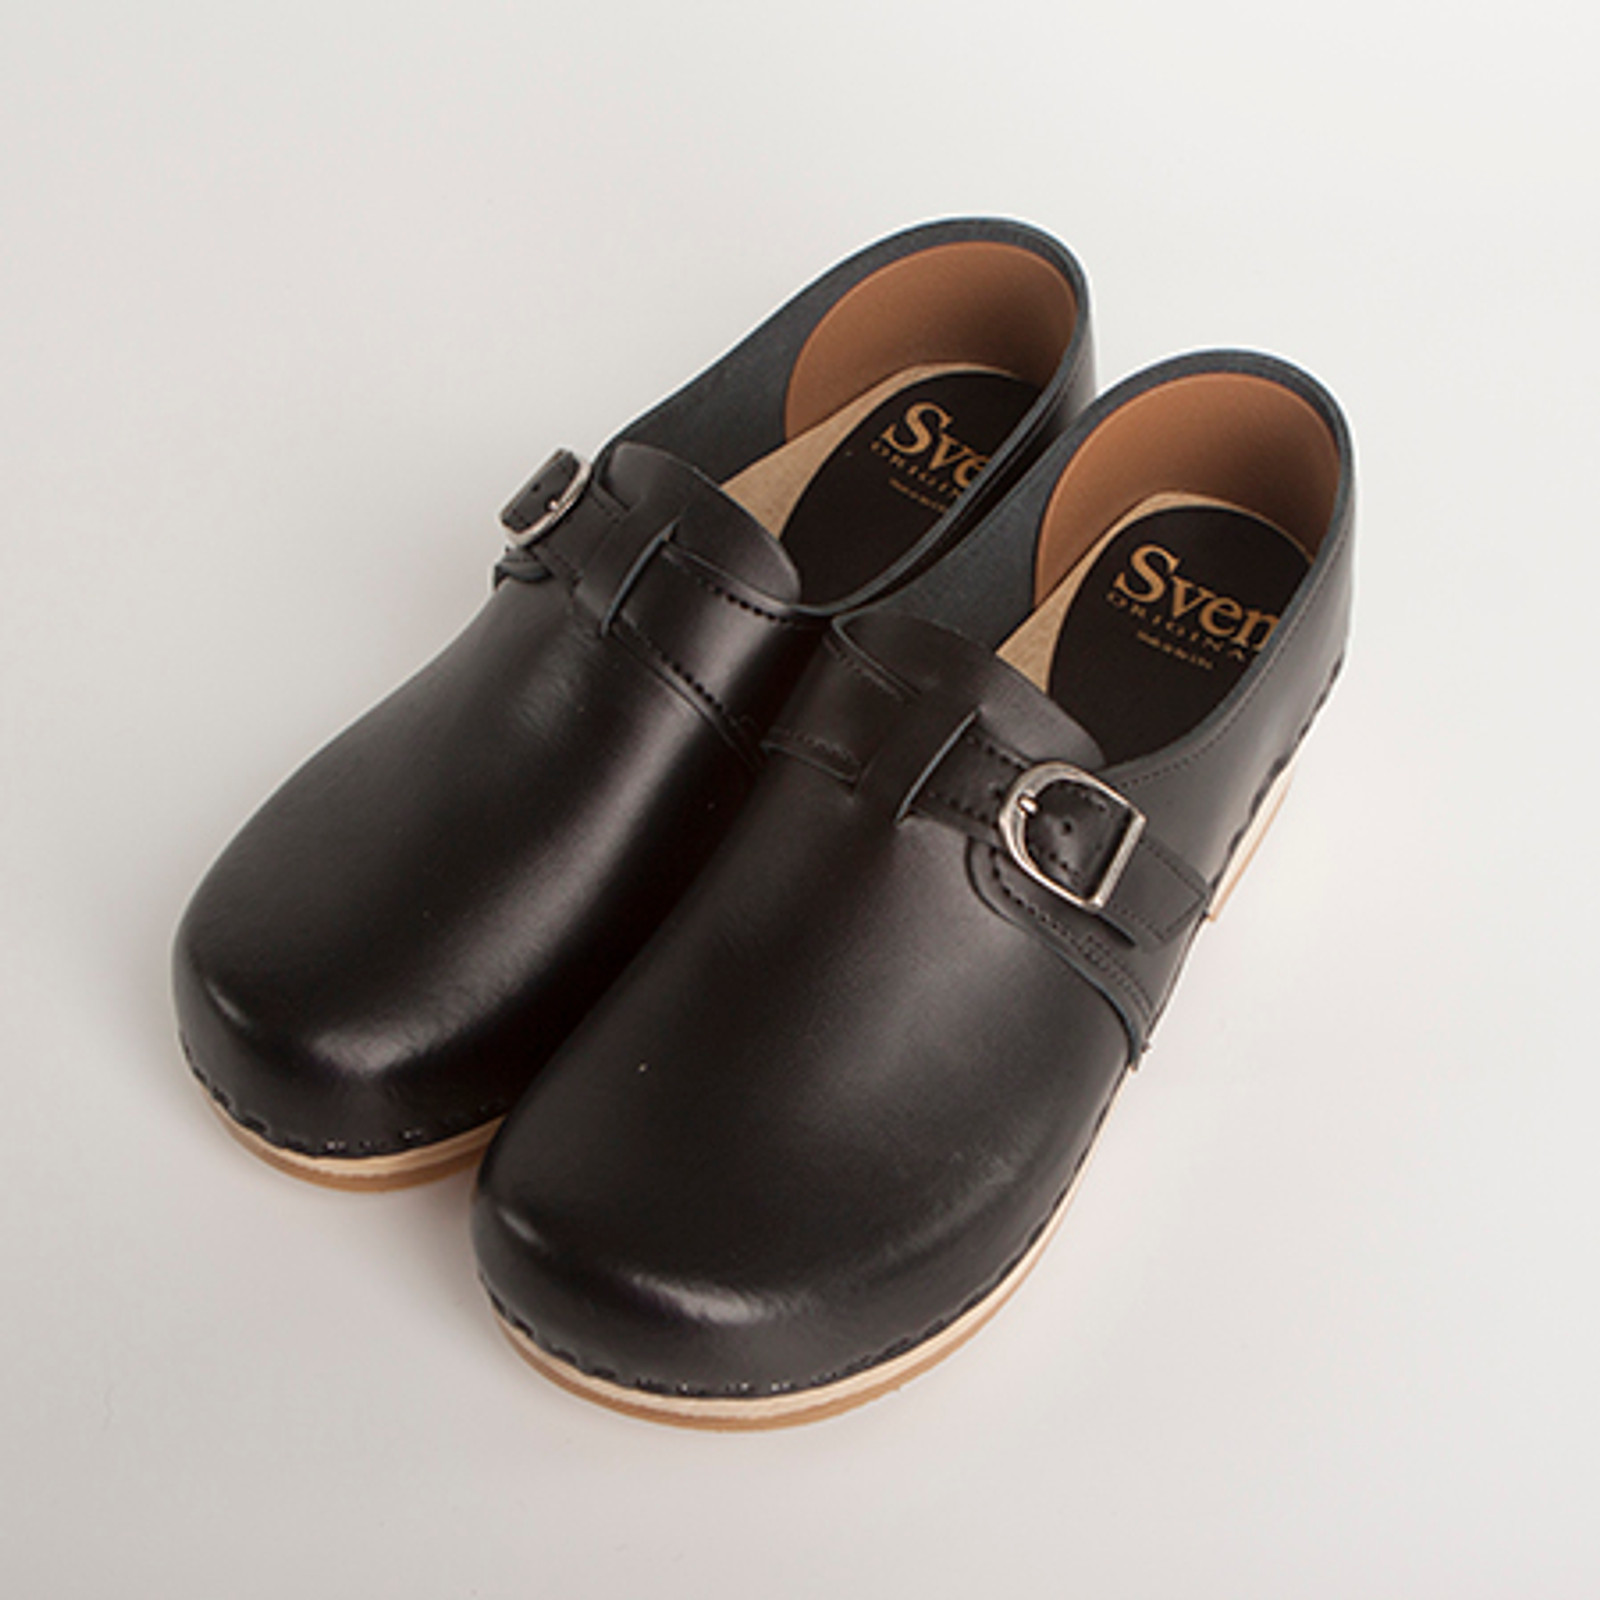 Closed Back Clogs - with Adjustable Buckle